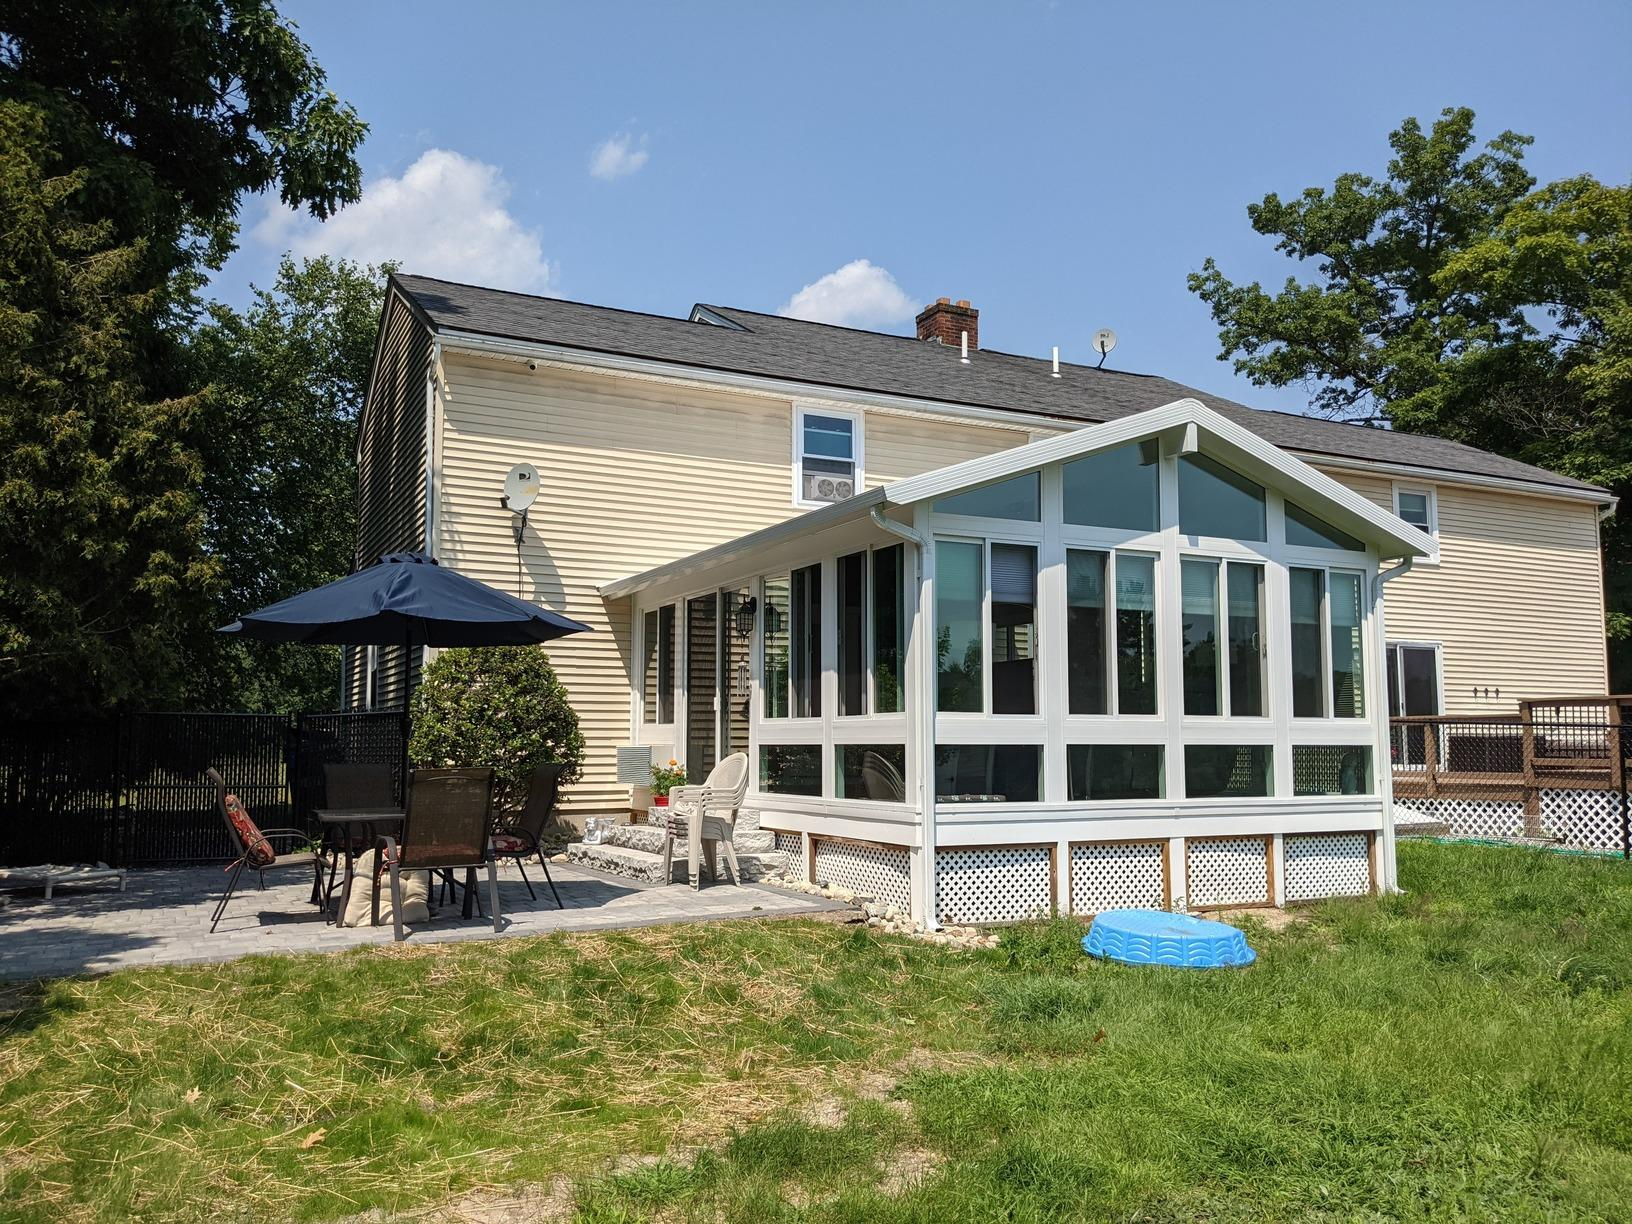 Four-Season Sunroom Built in Londonderry, NH - After Photo